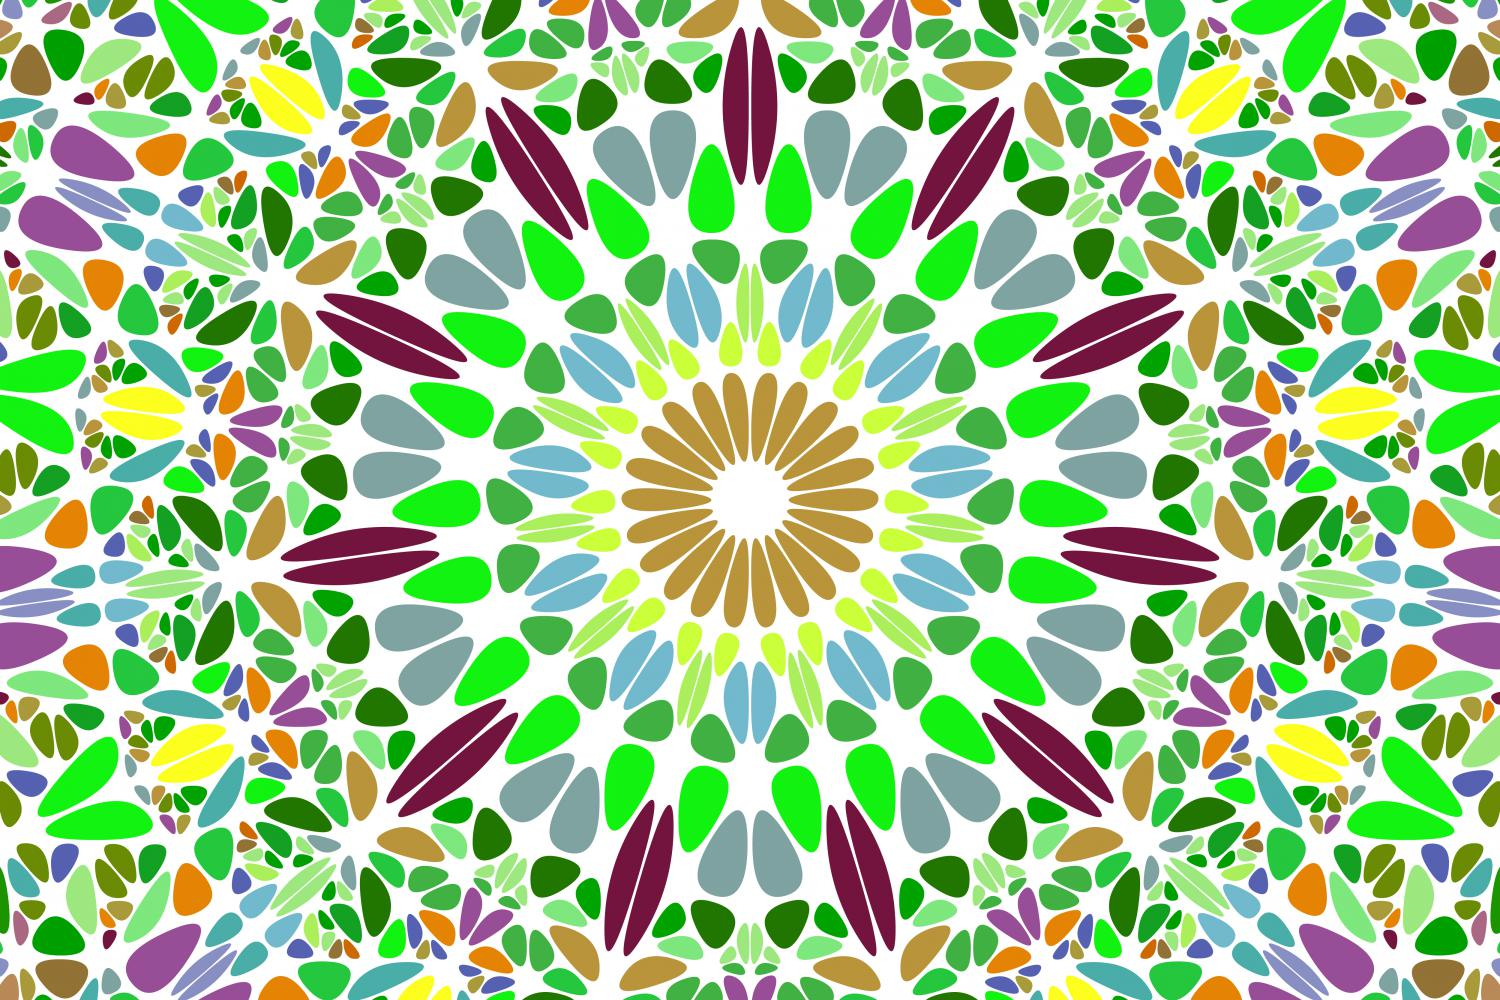 48 Floral Mandala Backgrounds example image 18